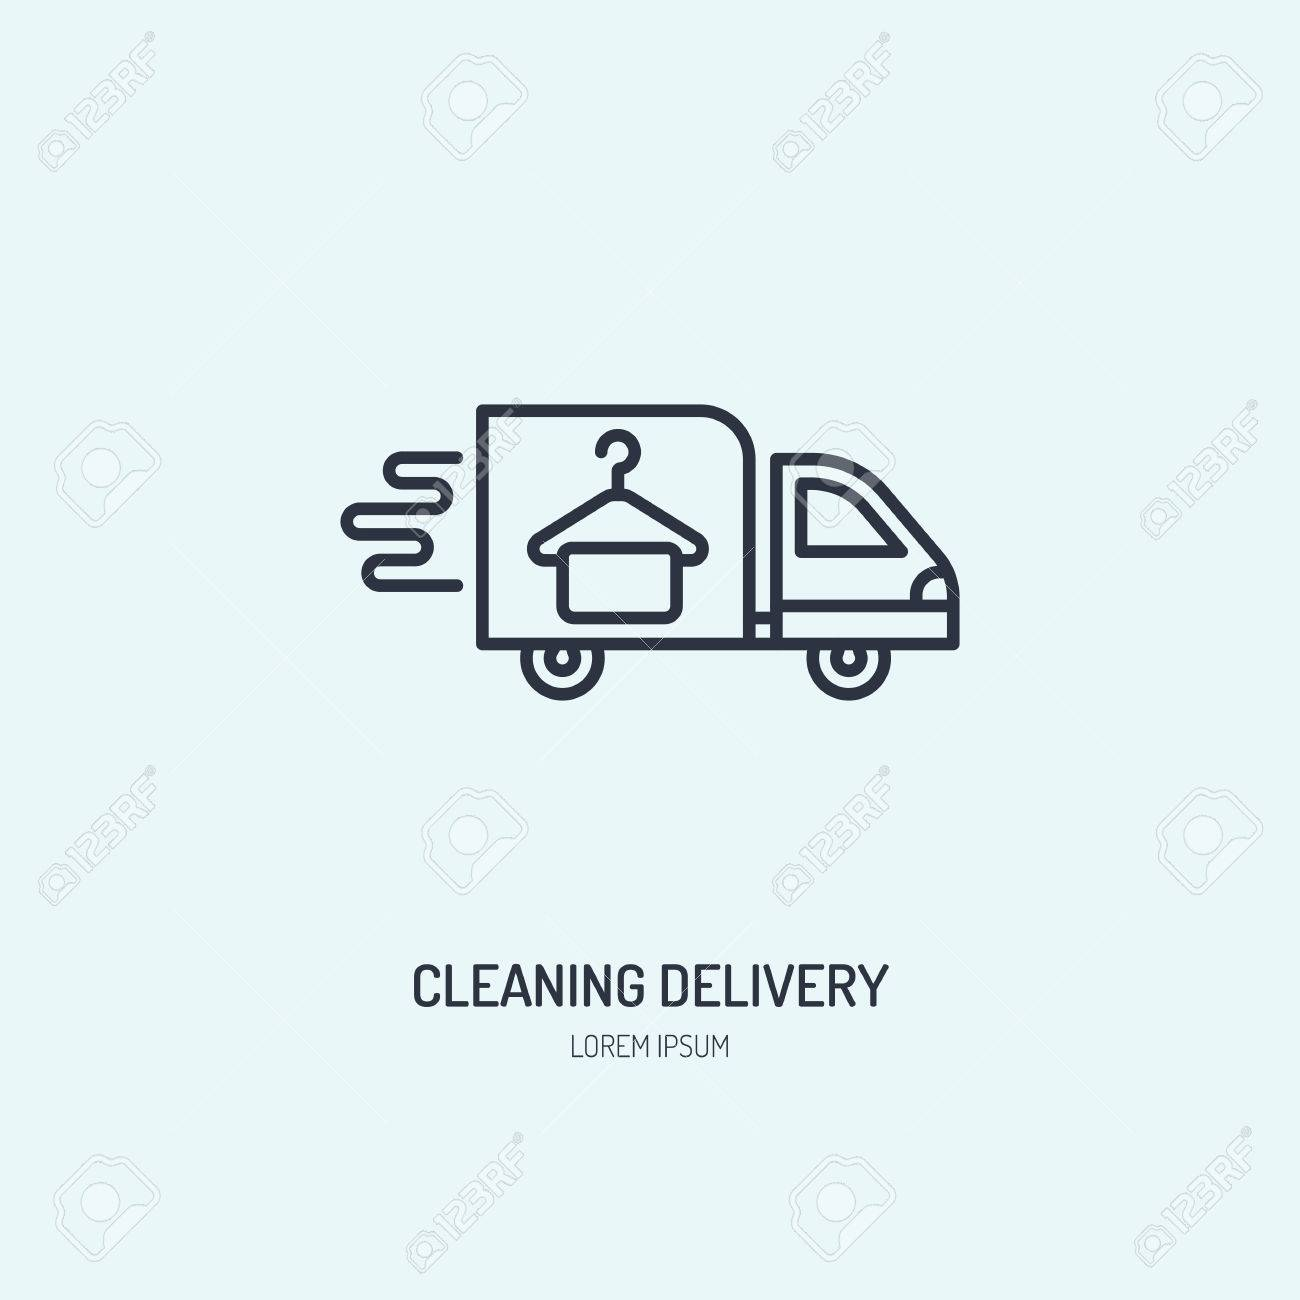 Delivery line icon, fast dry cleaning courier logo. Transportation flat sign, illustration for shipping business. - 74998115